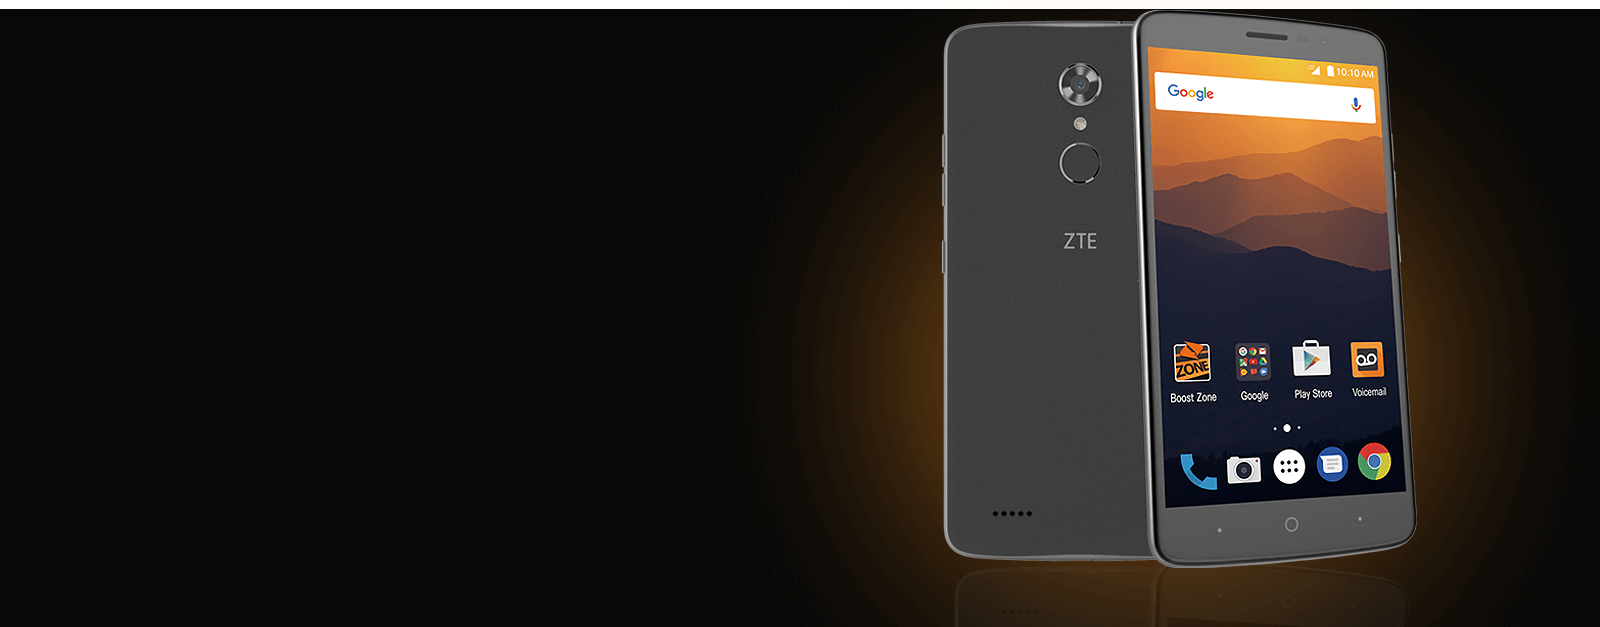 2 Easy Ways to Recover Deleted Call Logs on ZTE Phones in 2019